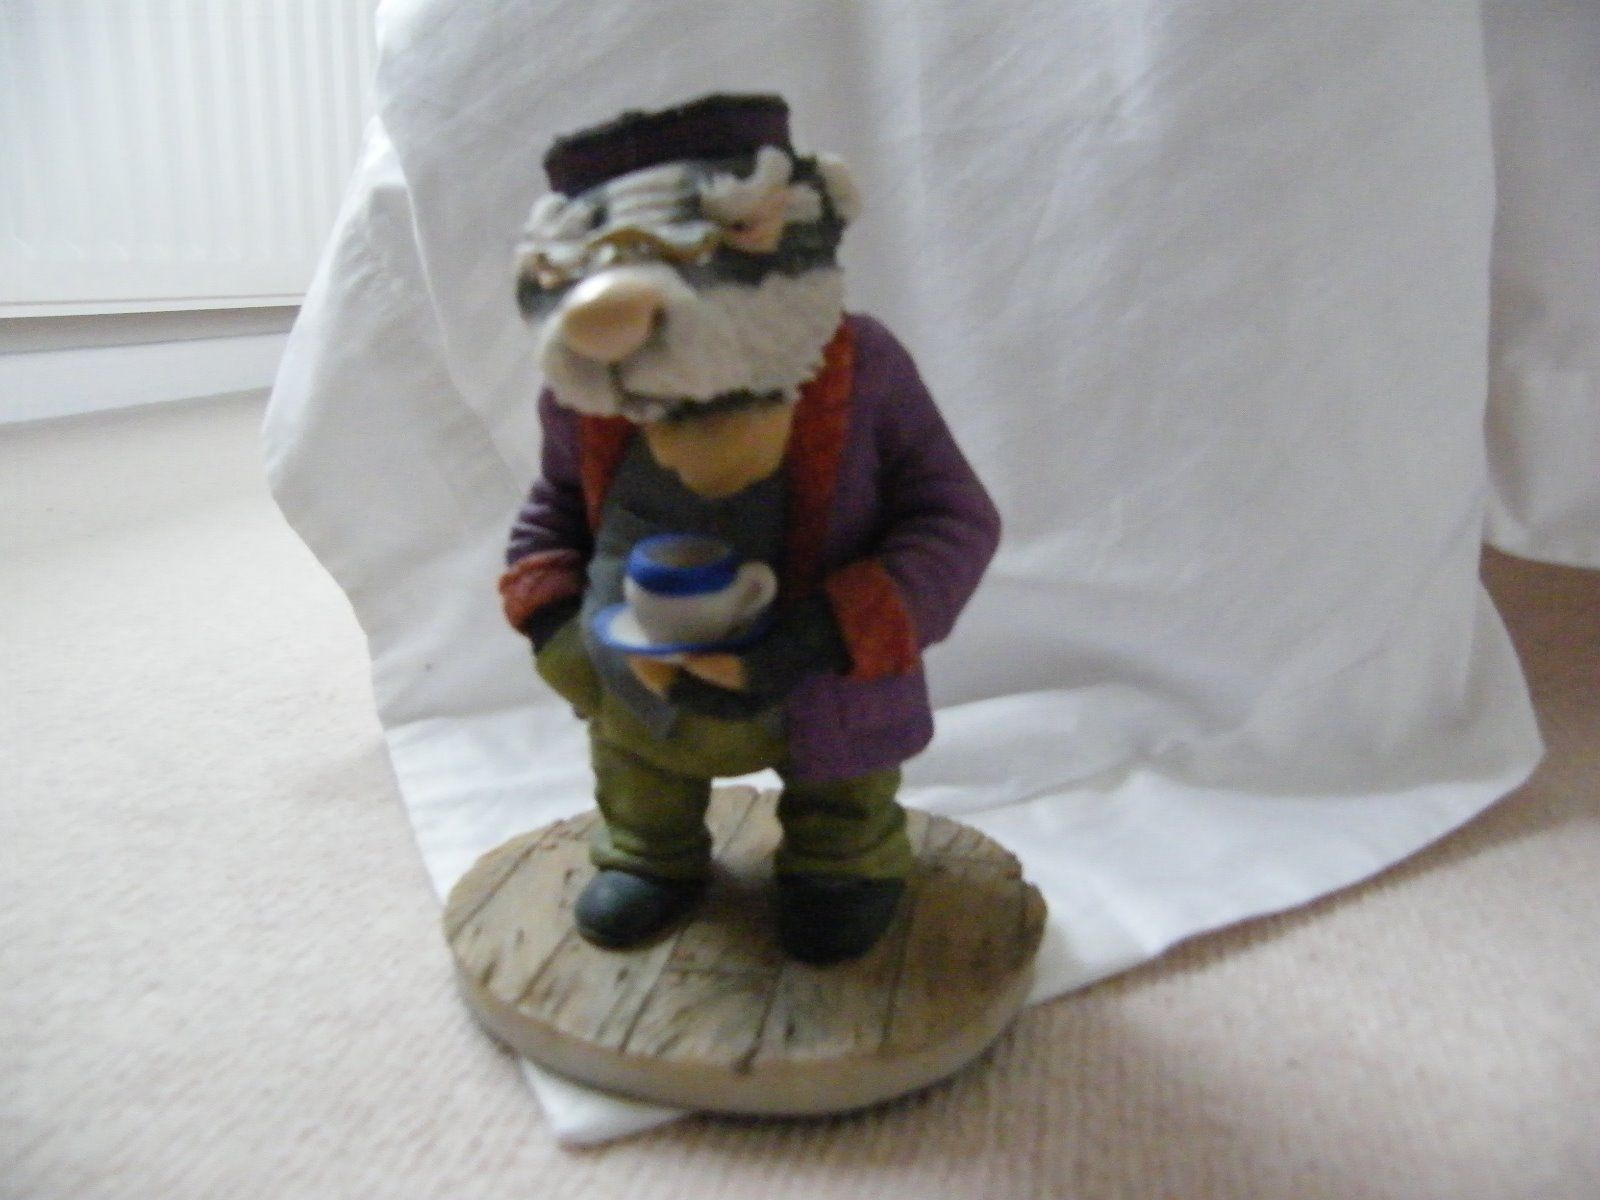 Wind in the willows ornaments - Badger Arden Sculptures For Cosgrove Hall Tv Series